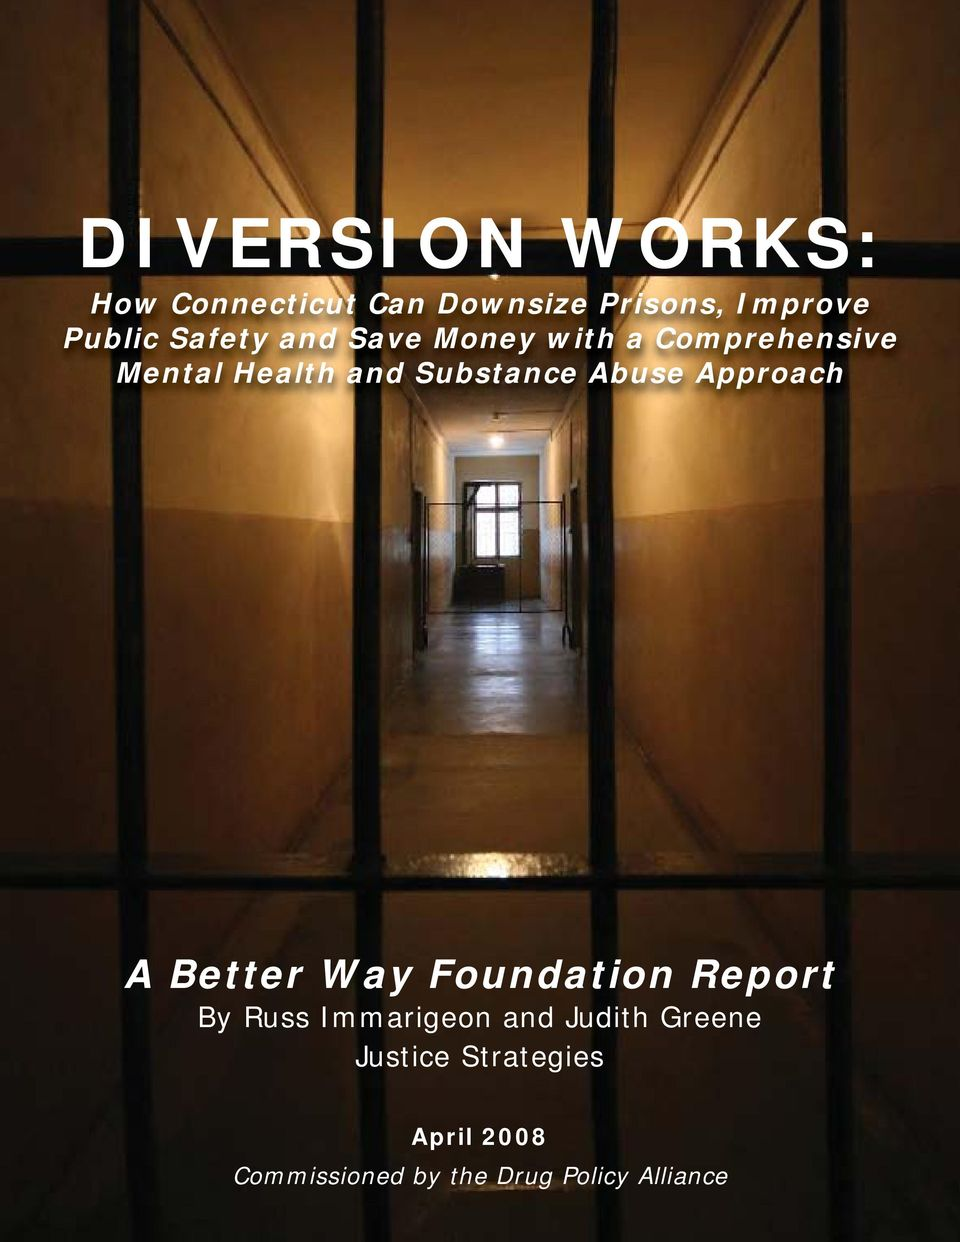 Abuse Approach A Better Way Foundation Report By Russ Immarigeon and